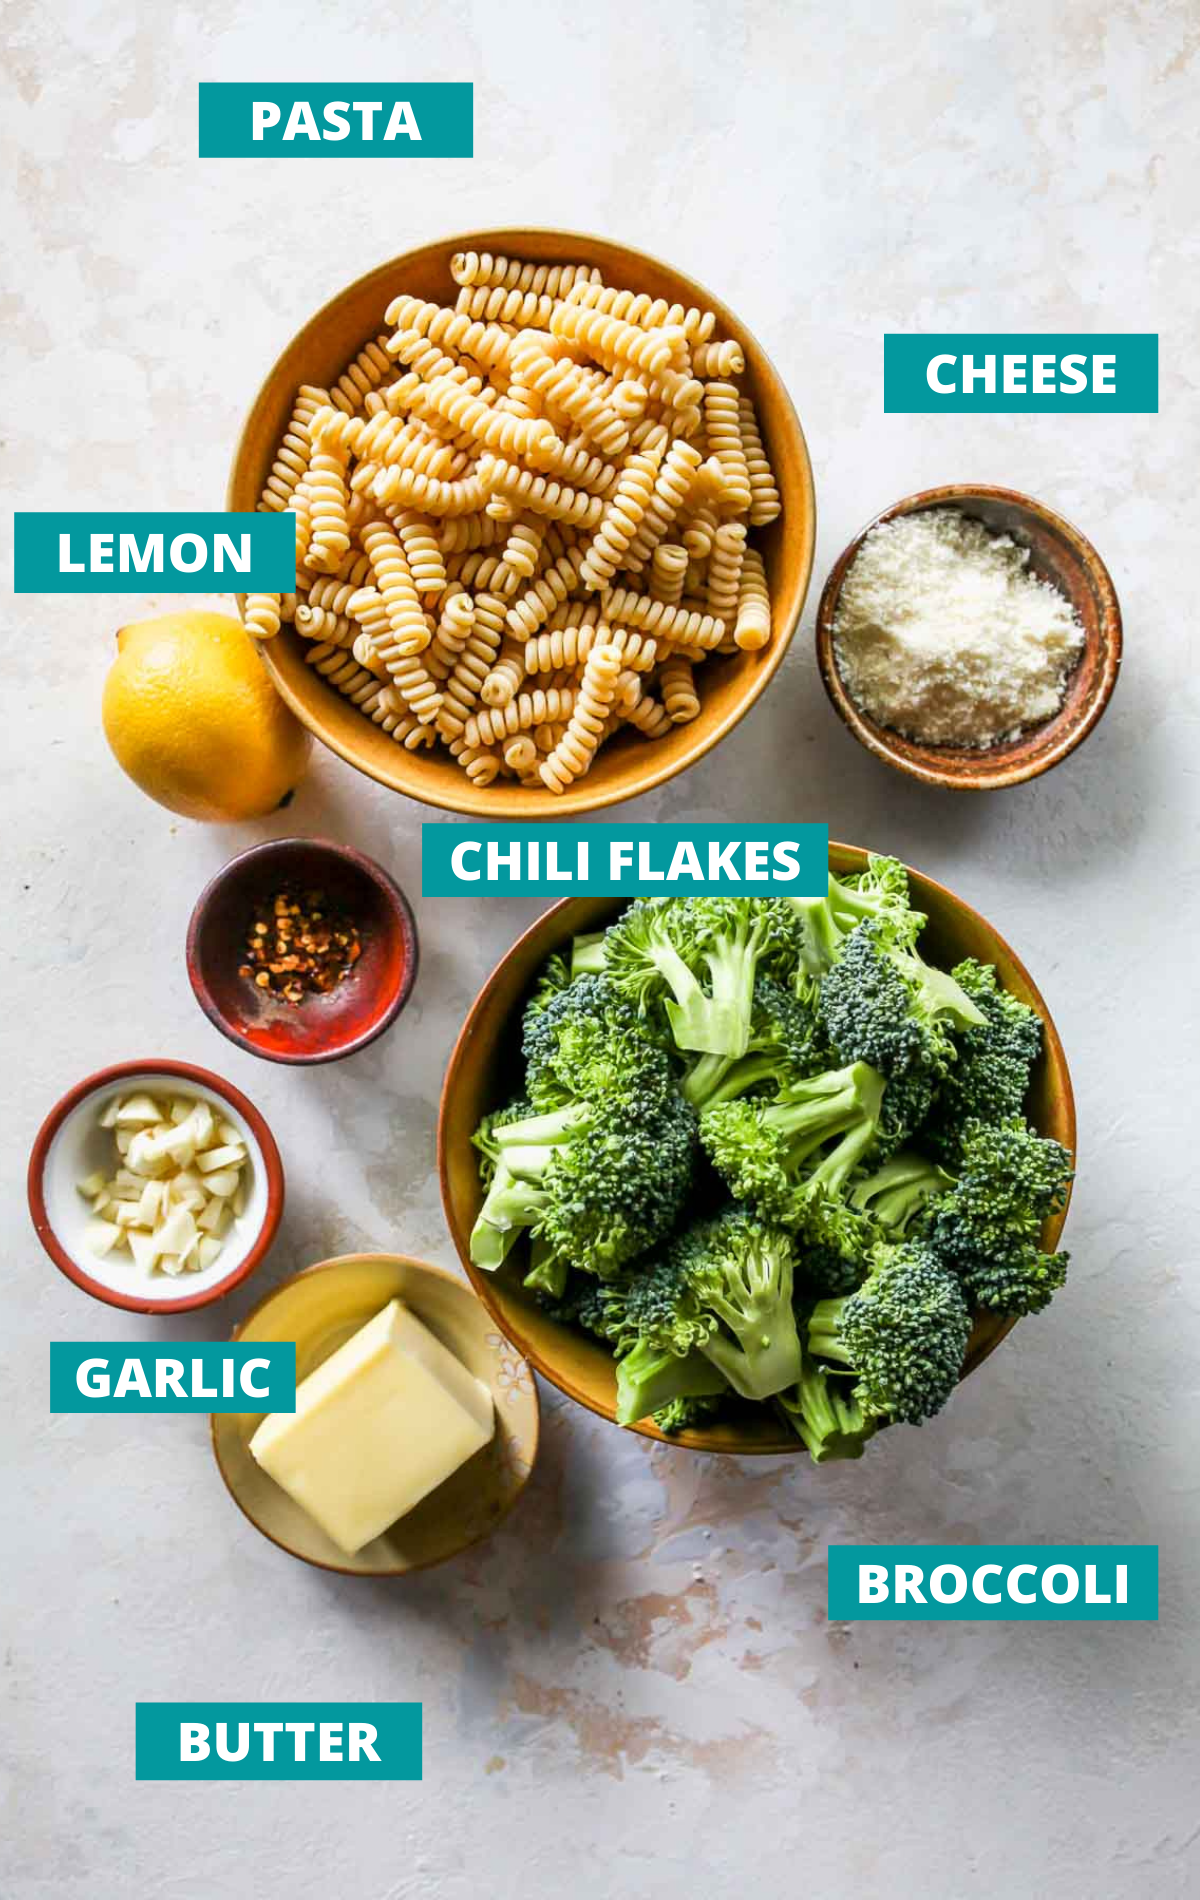 Broccoli pasta ingredients in separate bowls on a white board